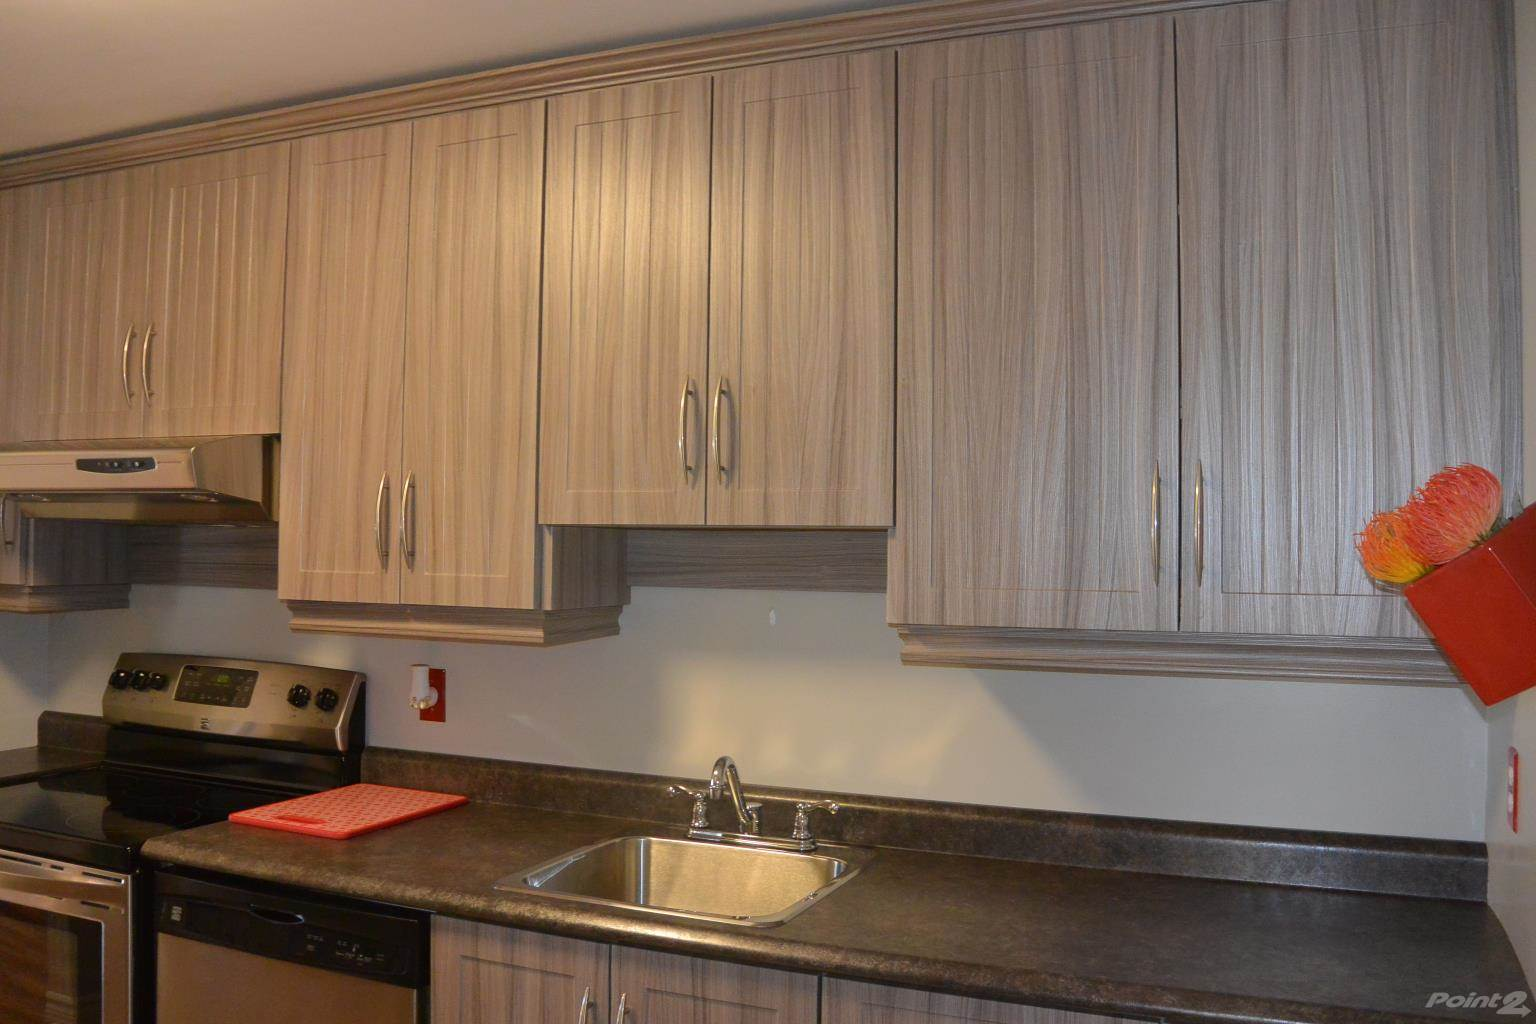 21 Lanse Aux Meadows Crescent in St John S - Condo For Sale : MLS# 1228444 Photo 7